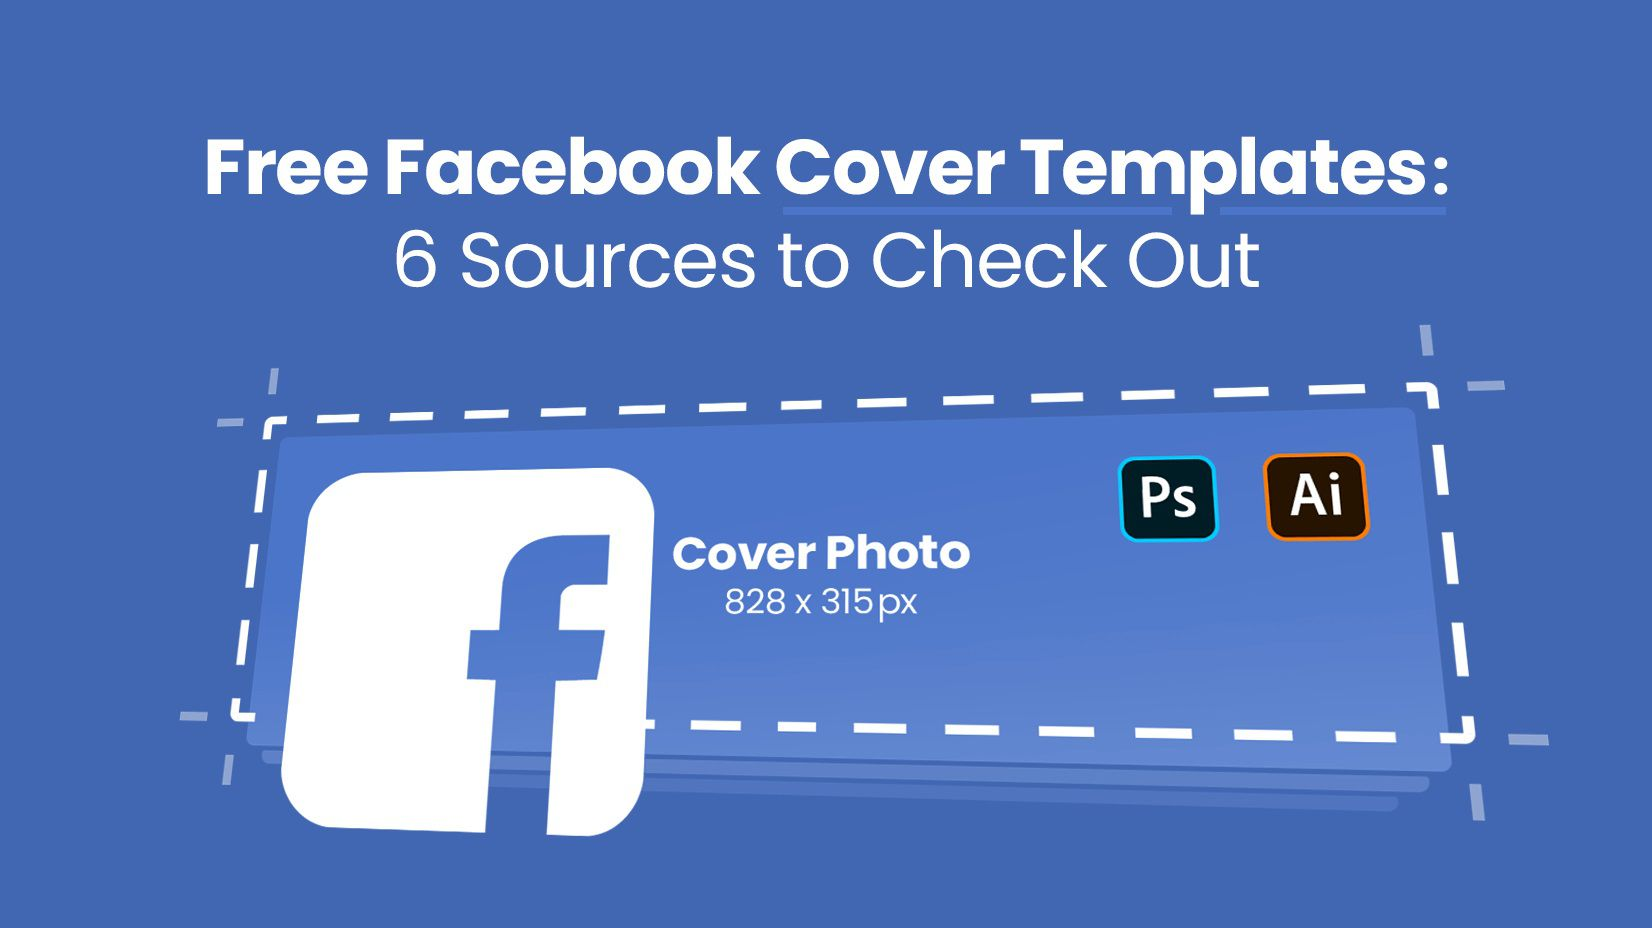 008 Unique Free Facebook Cover Template Example  Templates PhotoshopFull